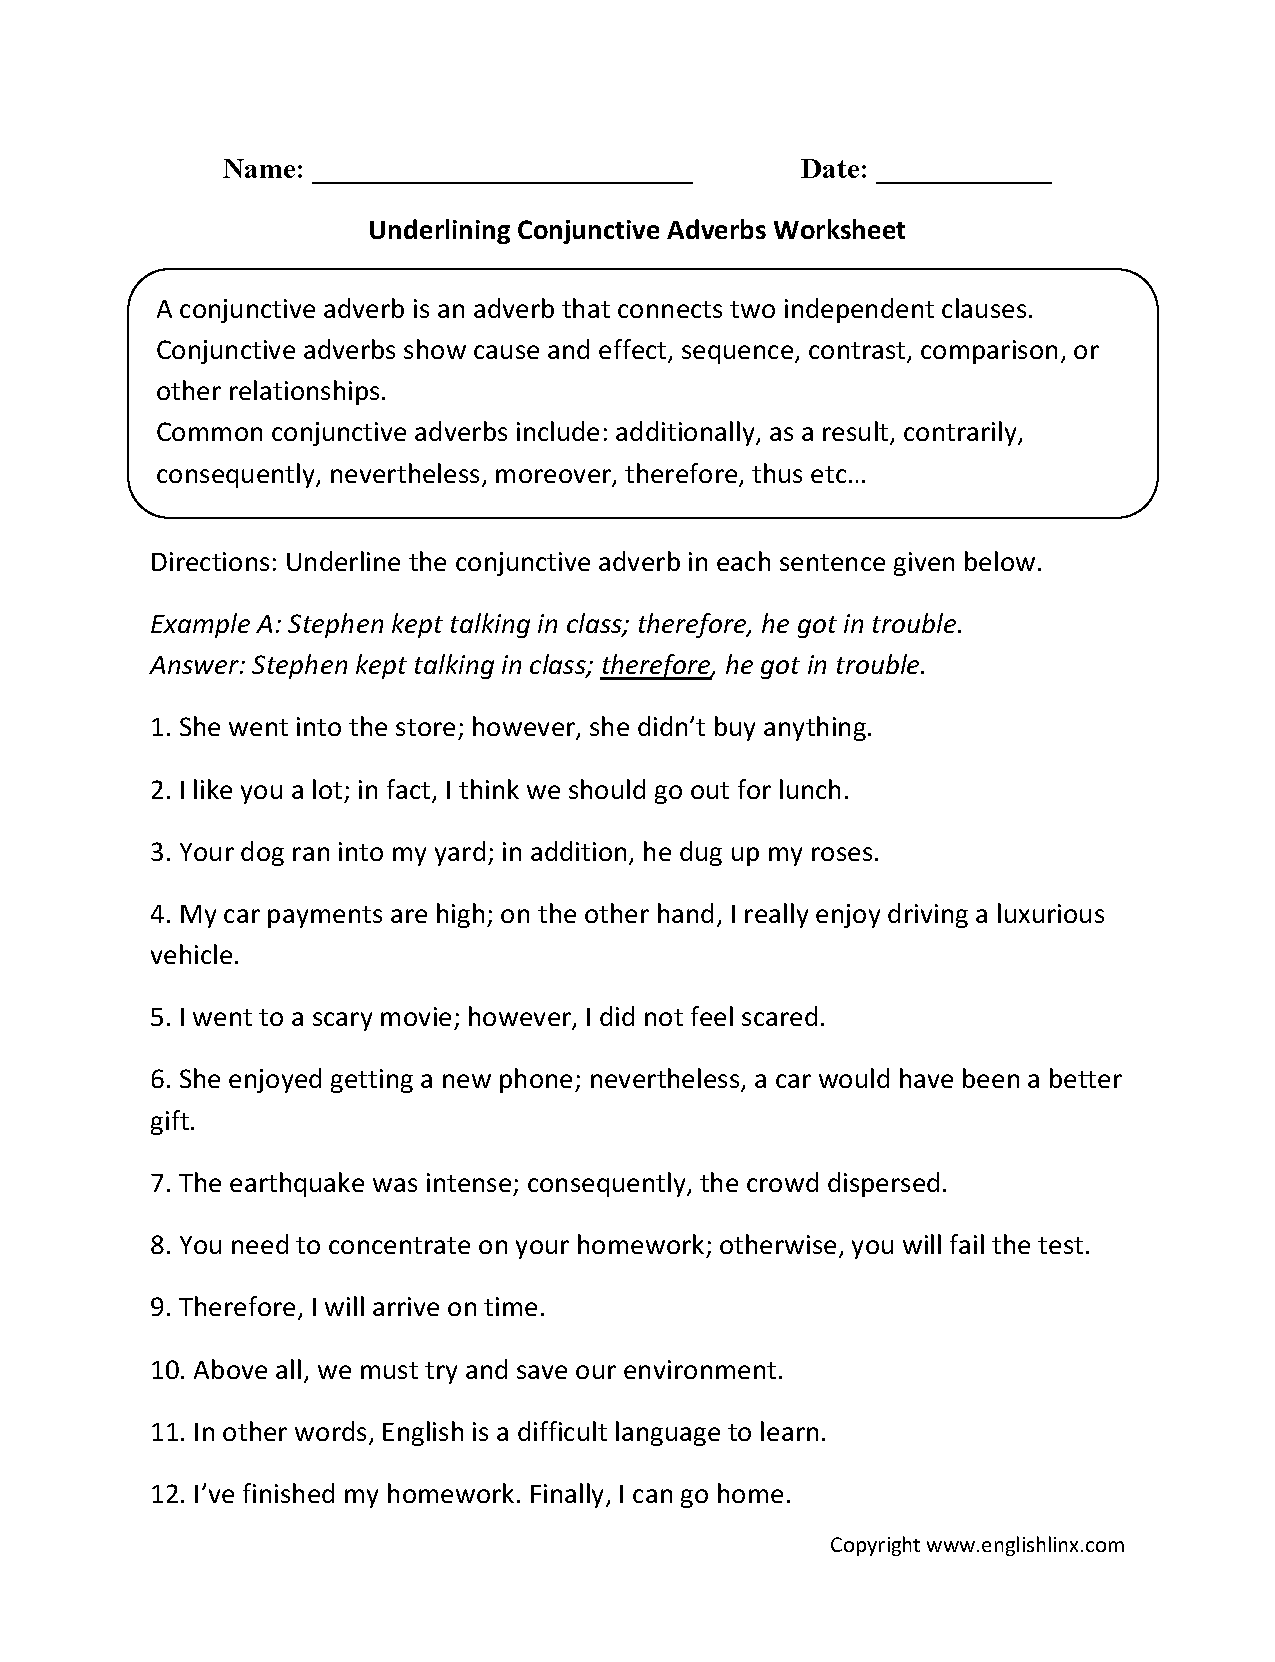 Weirdmailus  Inspiring Englishlinxcom  Conjunctions Worksheets With Outstanding Worksheet With Adorable Cub Scout Belt Loop Worksheet Also Cursive Alphabet Worksheets Free Printable In Addition Metric Measurement Worksheet And Symmetry Worksheets Th Grade As Well As All Word Family Worksheets Additionally Math  Grade Worksheets From Englishlinxcom With Weirdmailus  Outstanding Englishlinxcom  Conjunctions Worksheets With Adorable Worksheet And Inspiring Cub Scout Belt Loop Worksheet Also Cursive Alphabet Worksheets Free Printable In Addition Metric Measurement Worksheet From Englishlinxcom